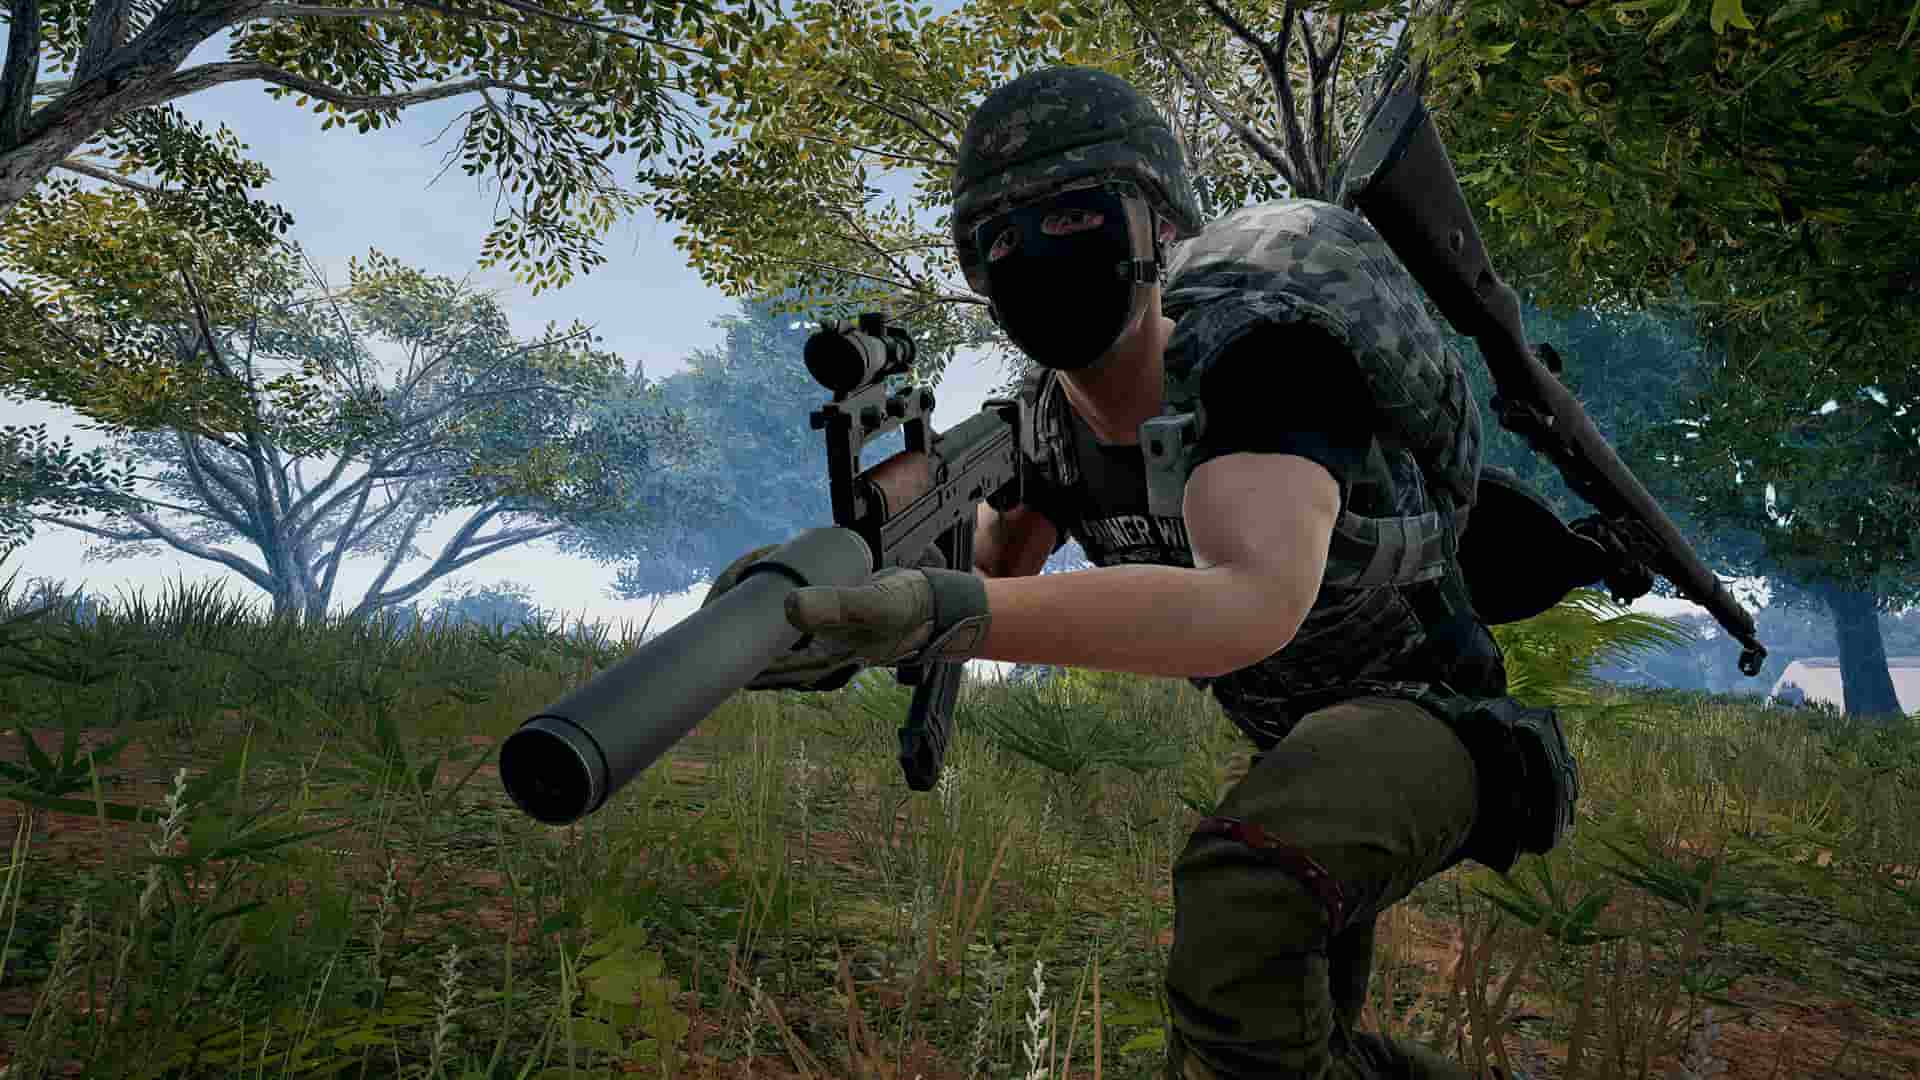 Next PUBG Sanhok Testing Phase Happening May 10, Open To